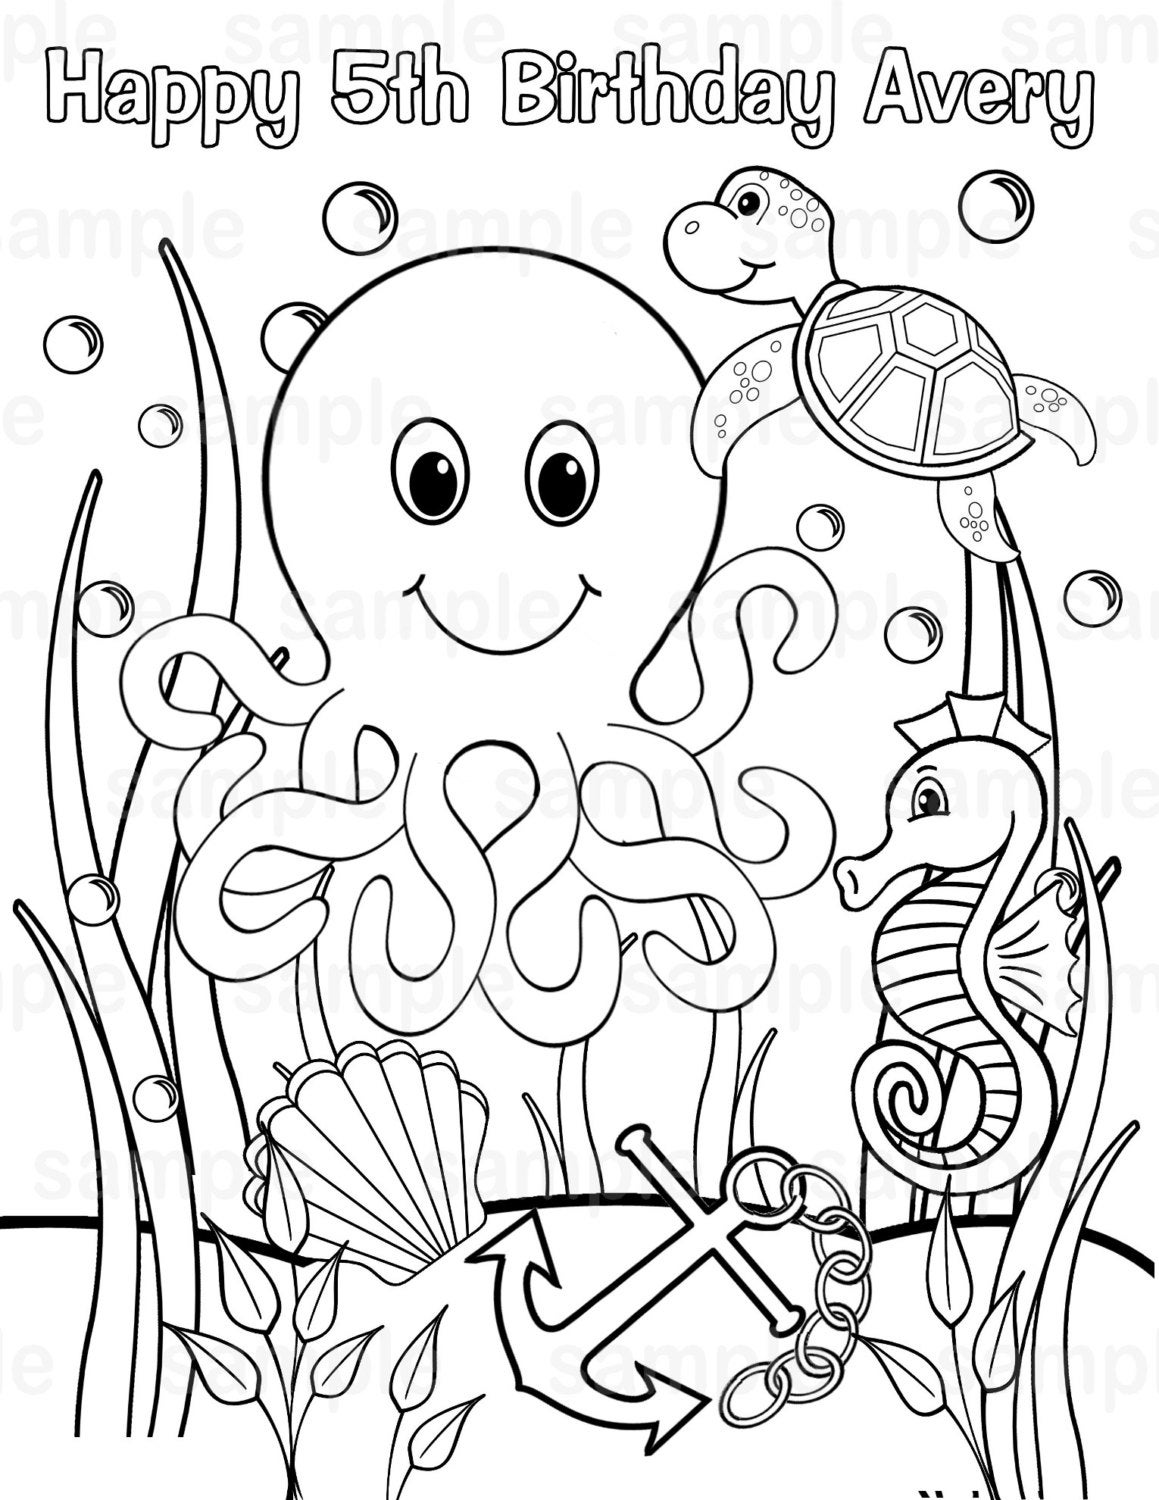 under the sea coloring pages pdf jellyfish pdf zentangle coloring page under the sea etsy coloring pages the under pdf sea